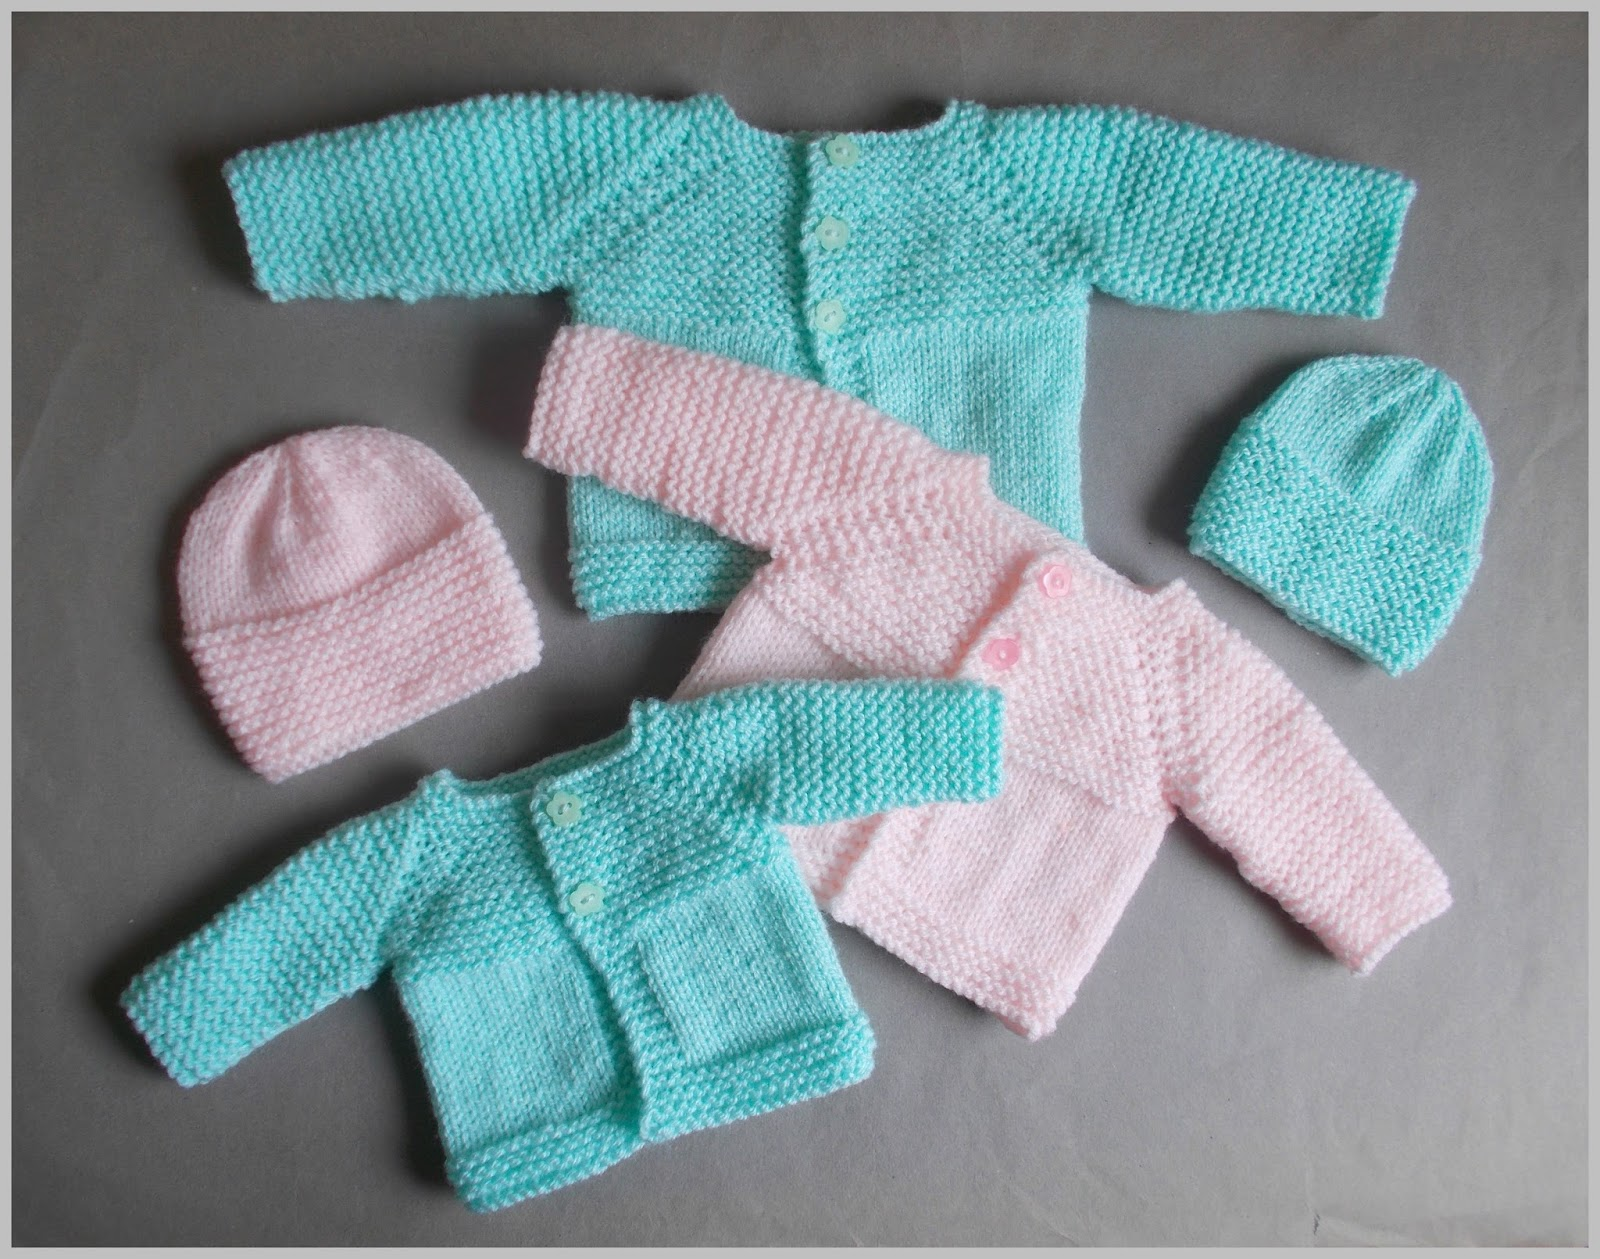 Miss Julia\'s Patterns: Free Patterns - Baby Sets & Outfits to Knit